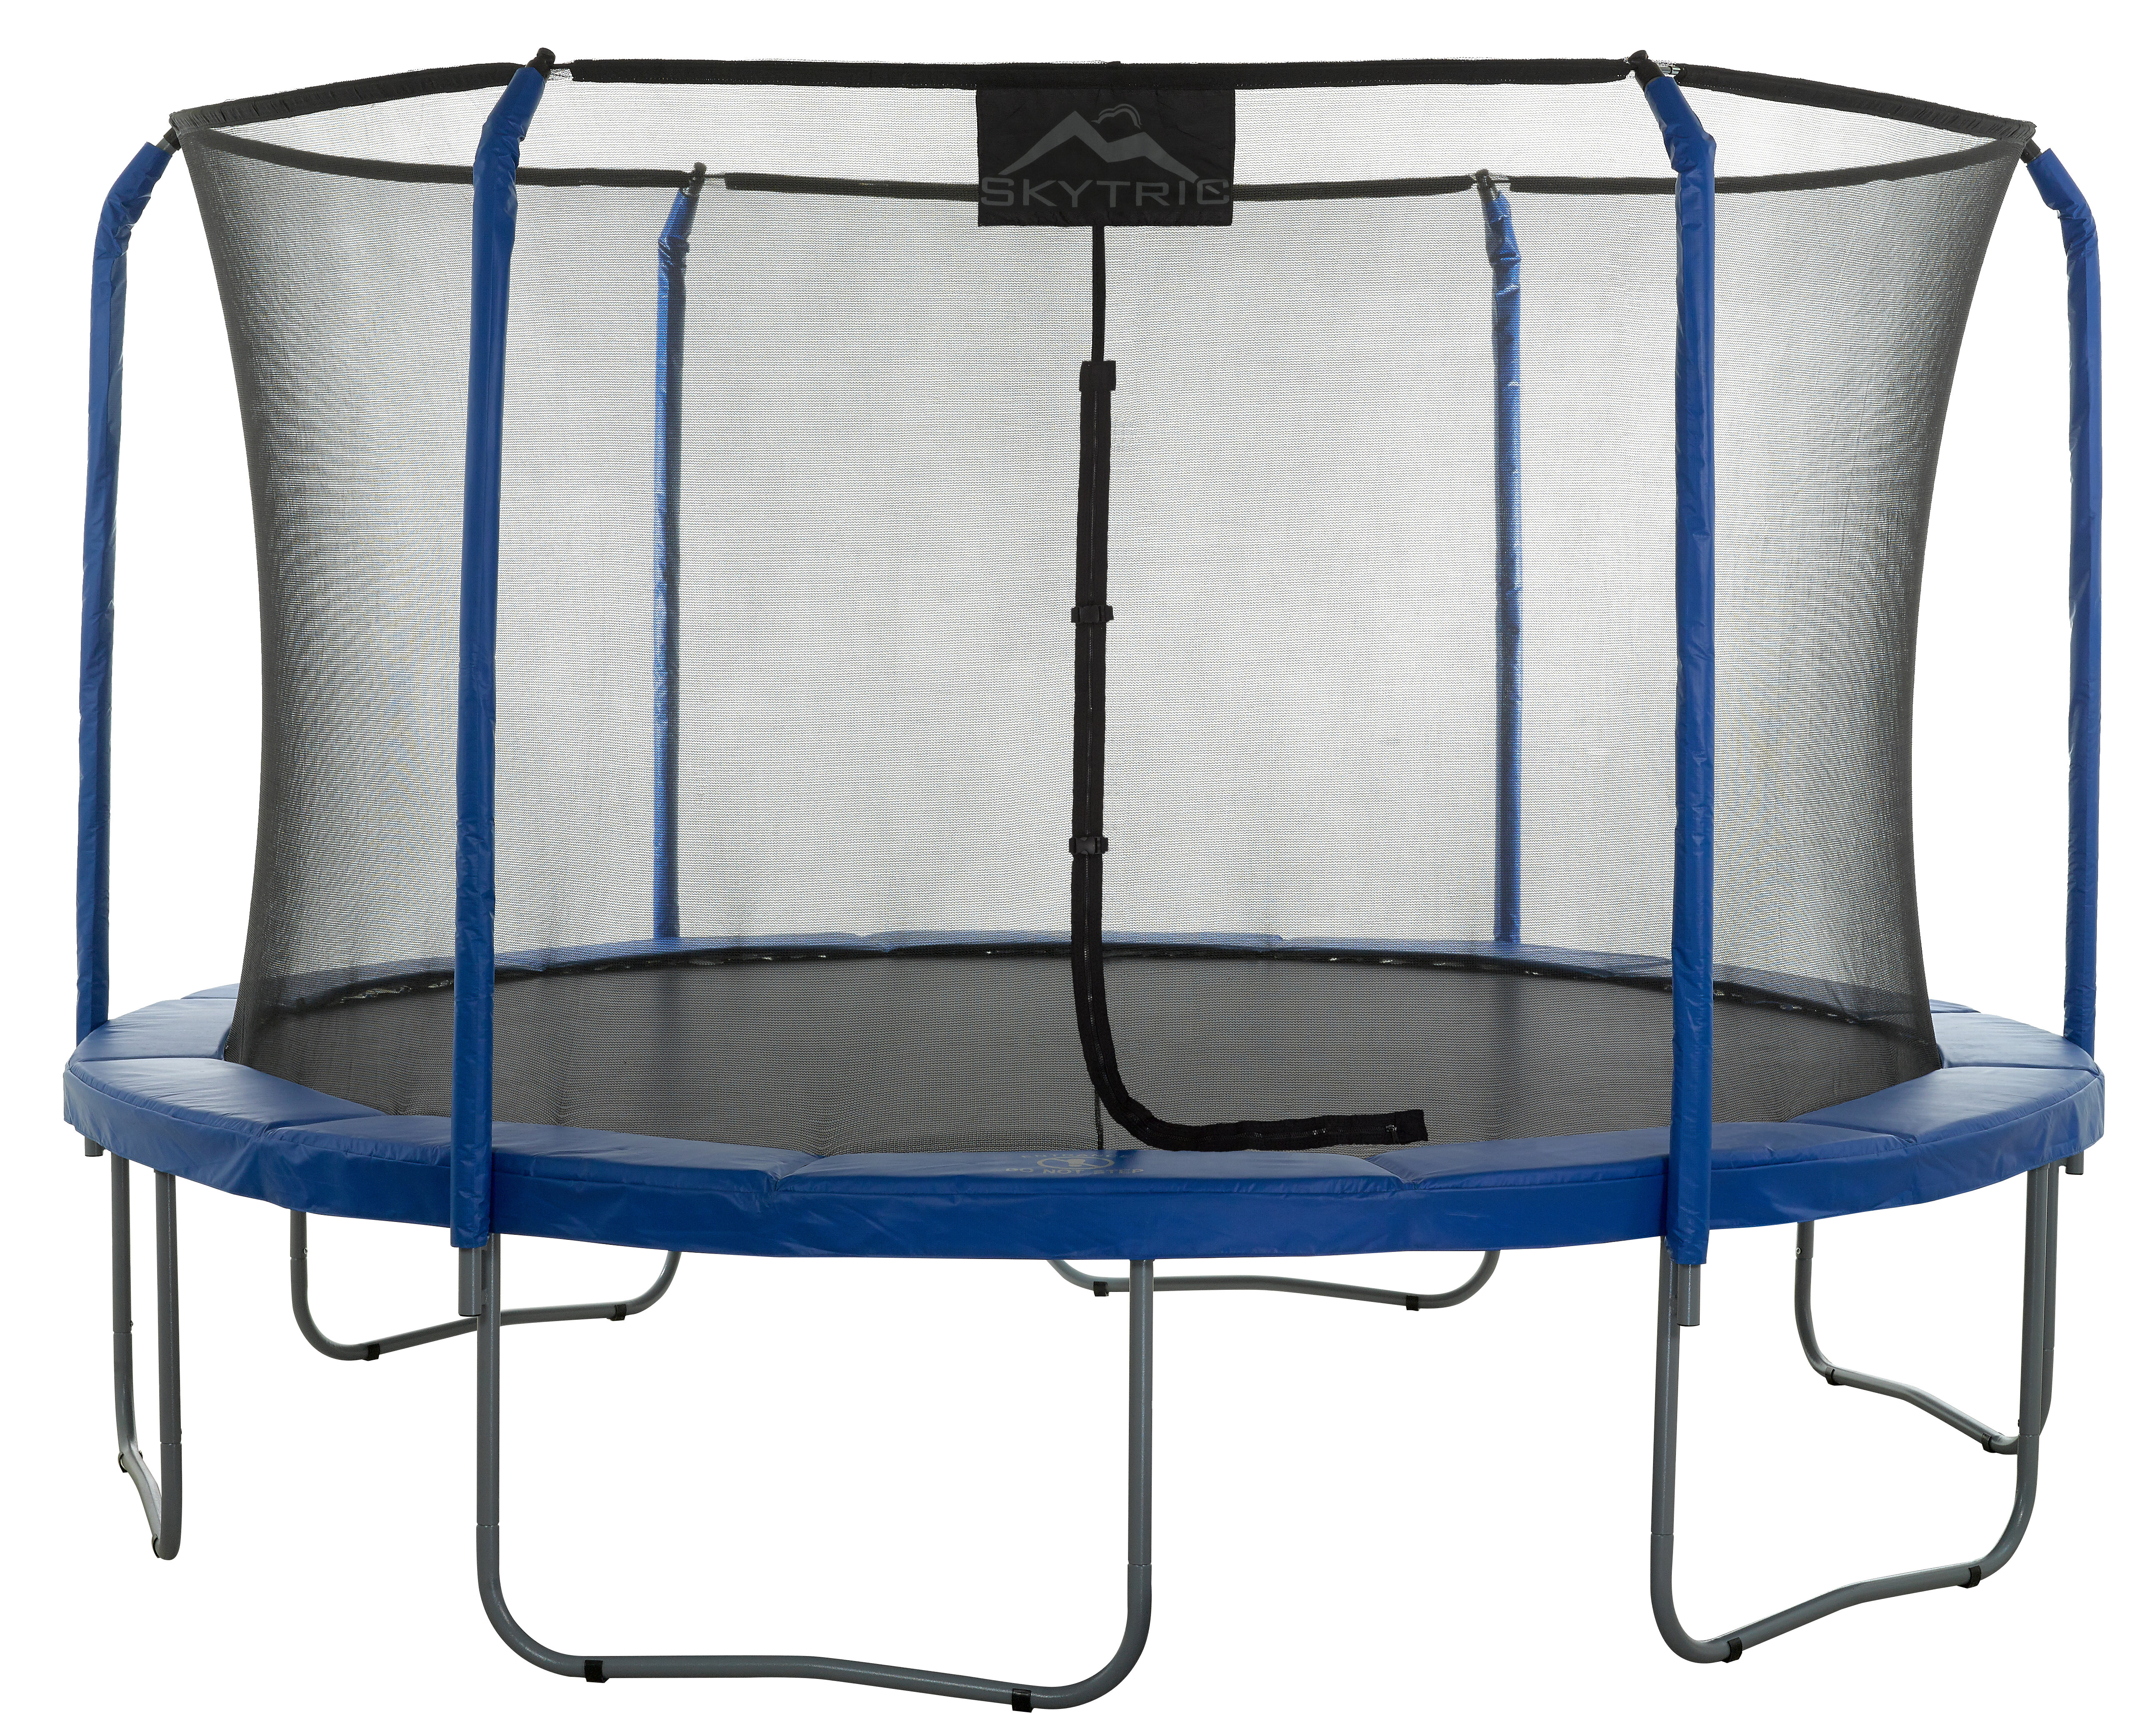 Upper Bounce ReplacementSafety Net for Trampoline using Curved Poles /& Top Ring